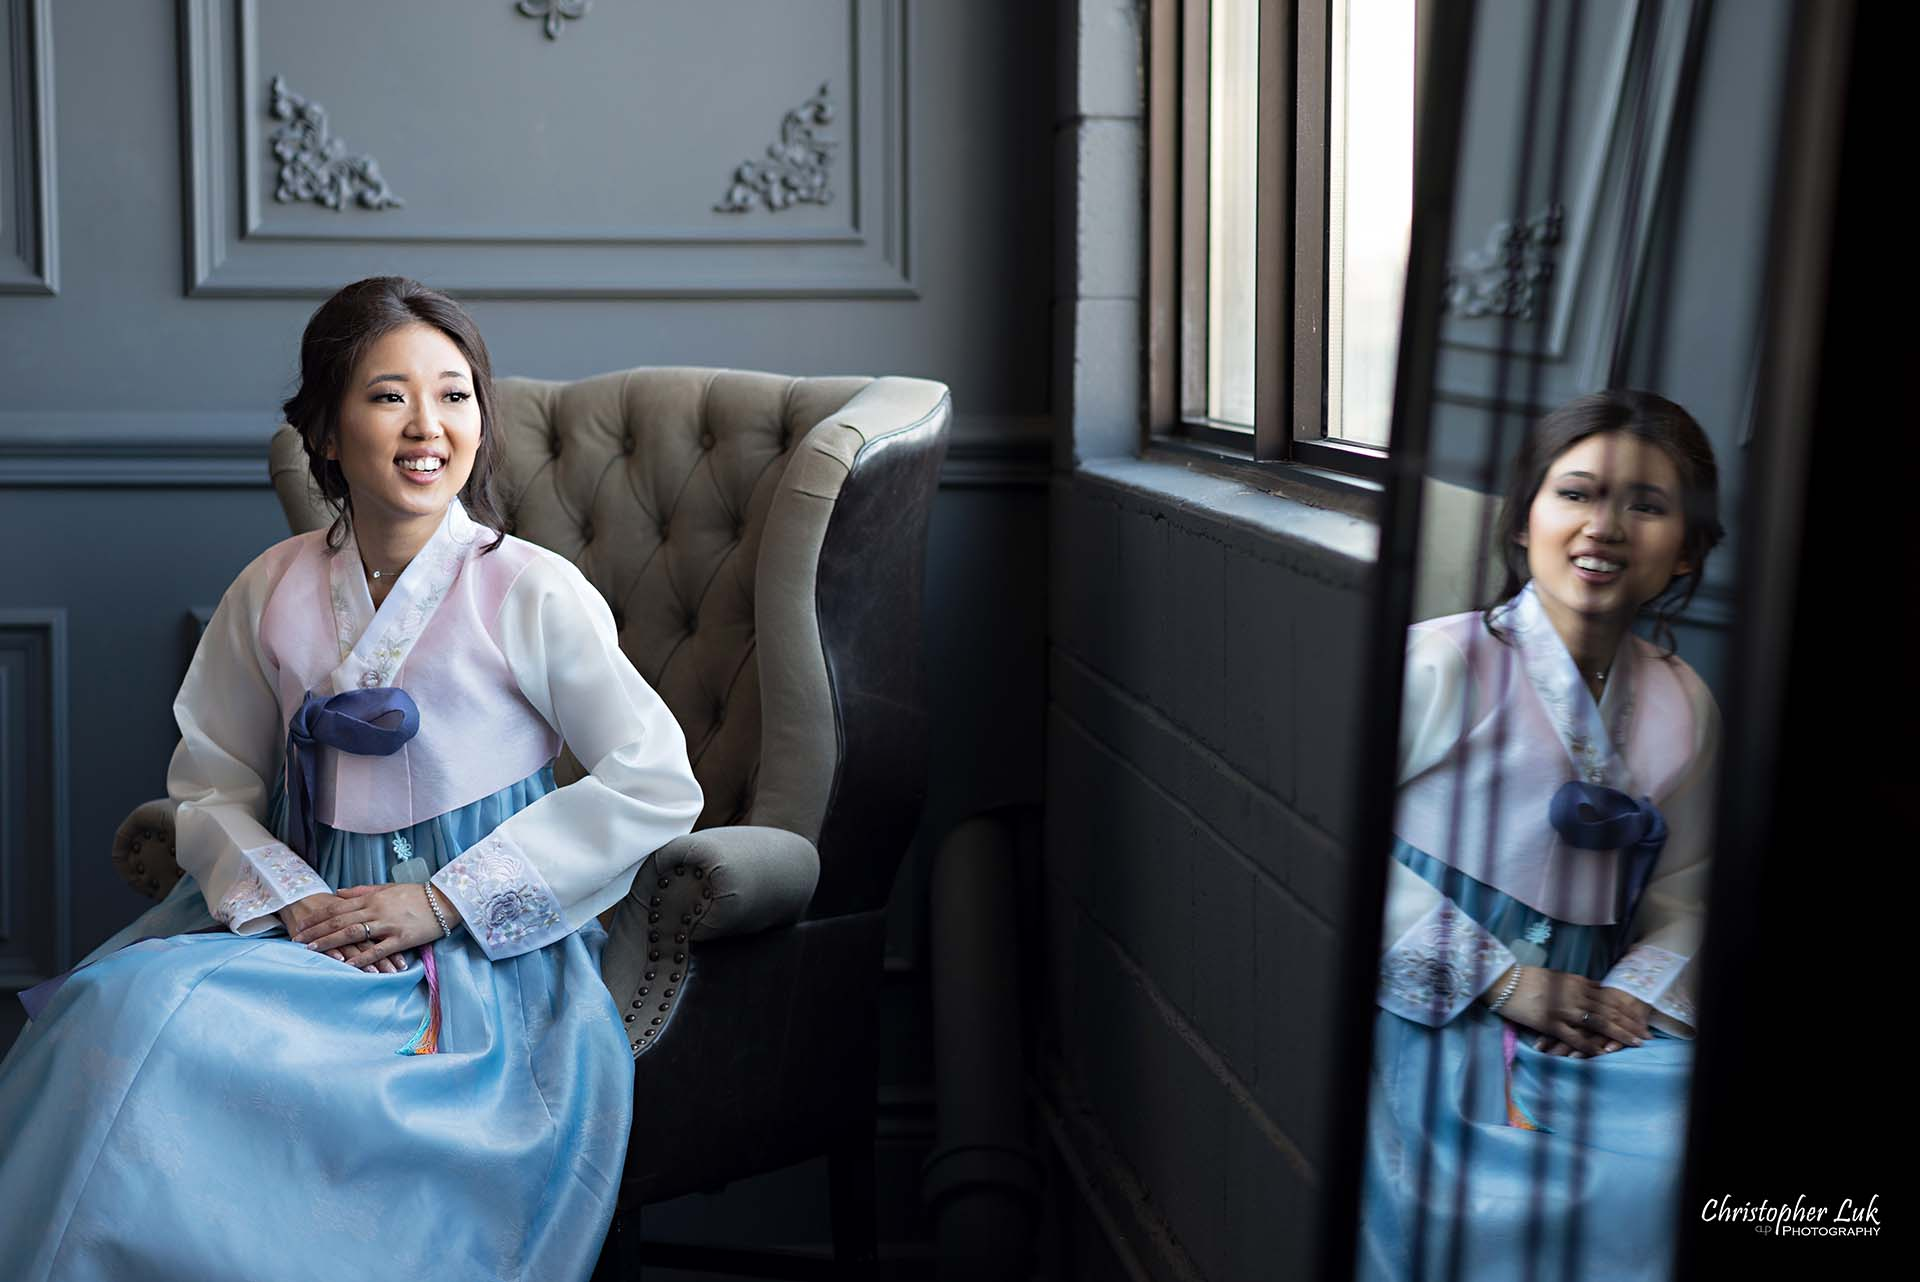 Christopher Luk Toronto Wedding Photographer - Mint Room Studios Bride Natural Candid Photojournalistic Library Studio Korean Drama Hanbok Leather Wingback Chair Mirror